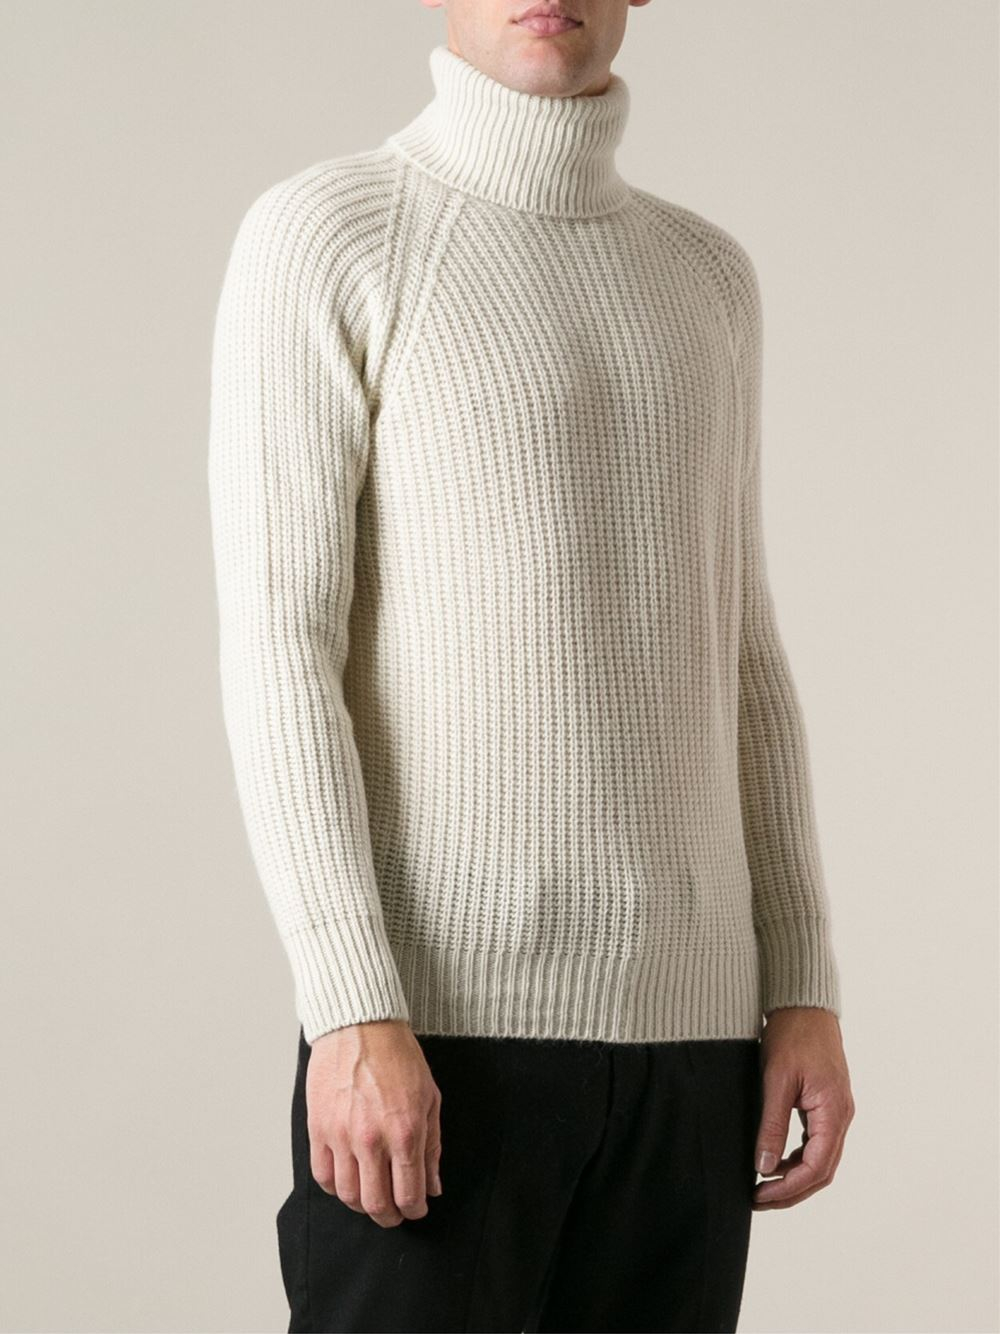 Knit Knitwear for Men